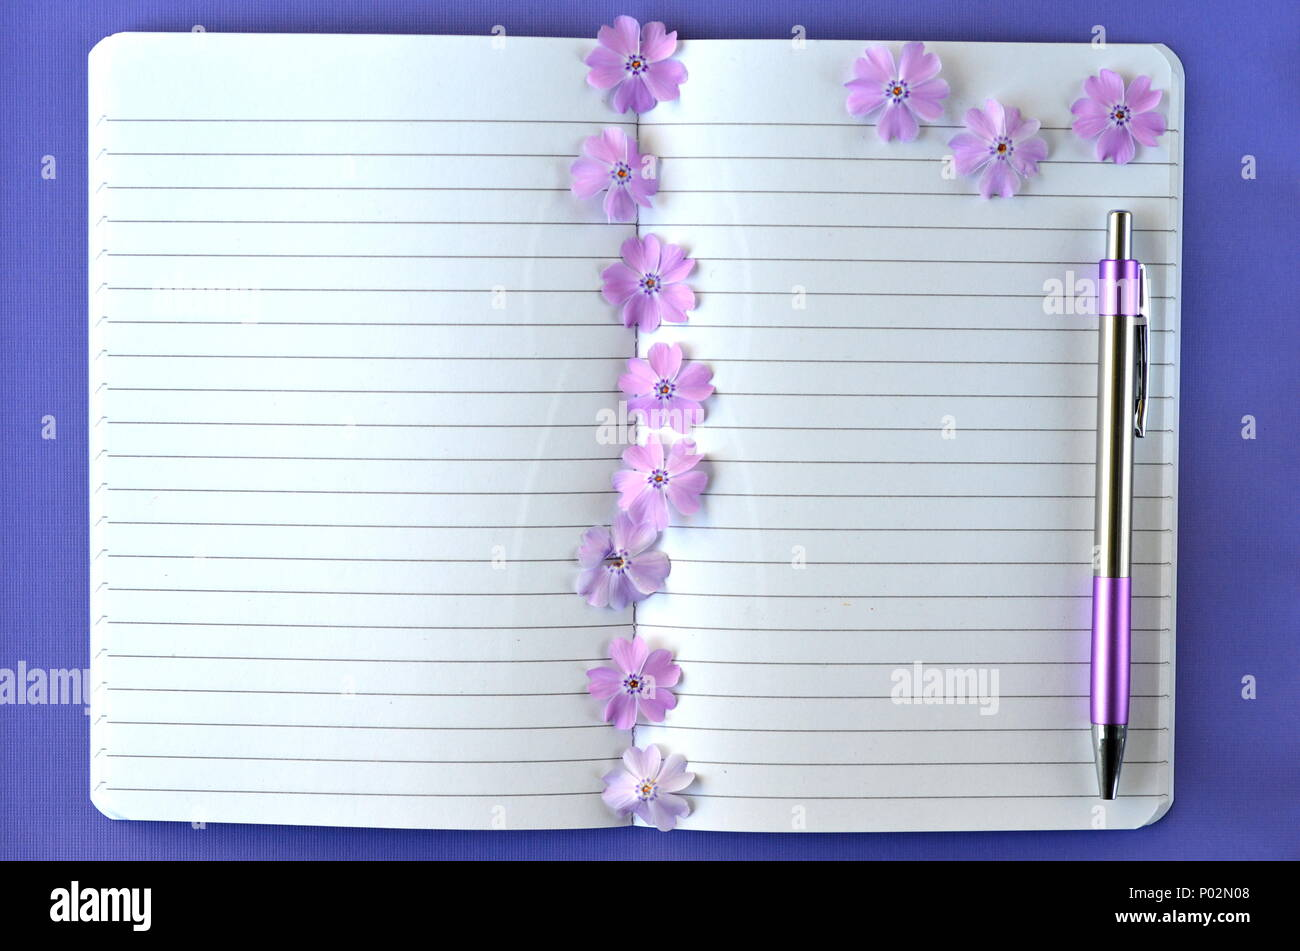 Ultra violet flatlay of feminine stationery, notebook, pen, lavender phlox flowers with copy space. Brainstorming ideas, note taking or diary writing - Stock Image